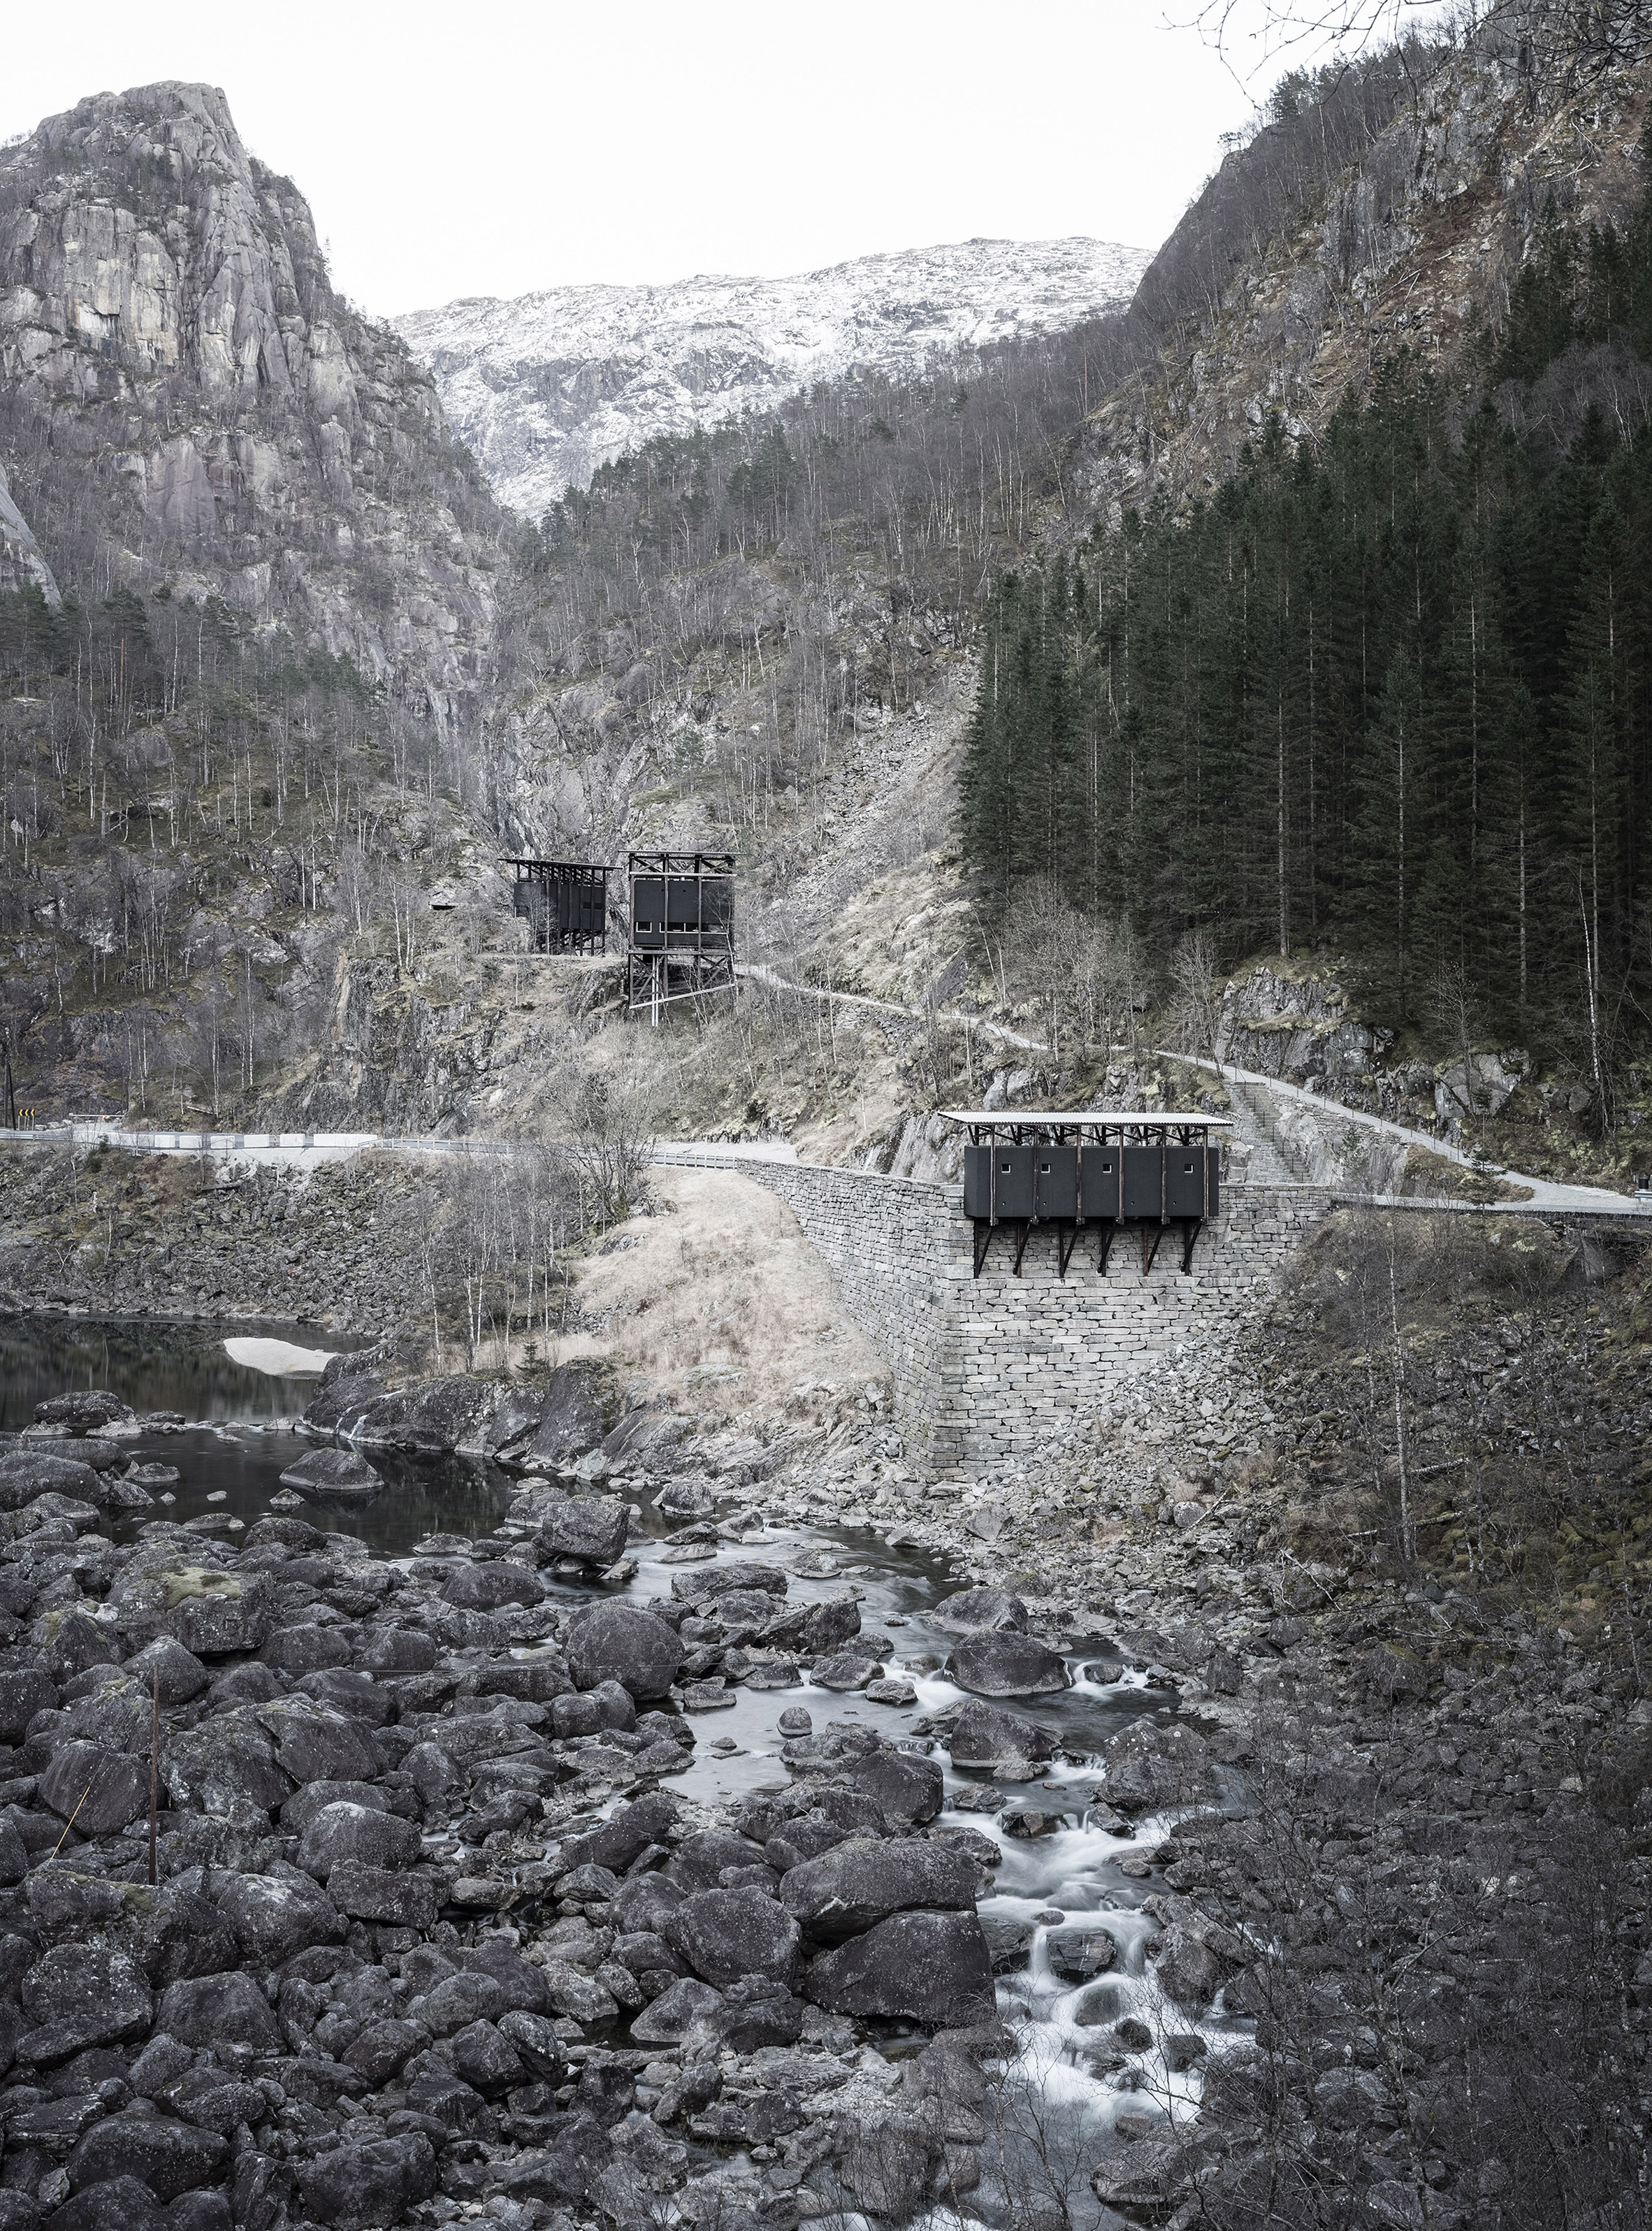 Peter Zumthor's stilted Zinc Mine Museum captured in photography by Aldo Amoretti